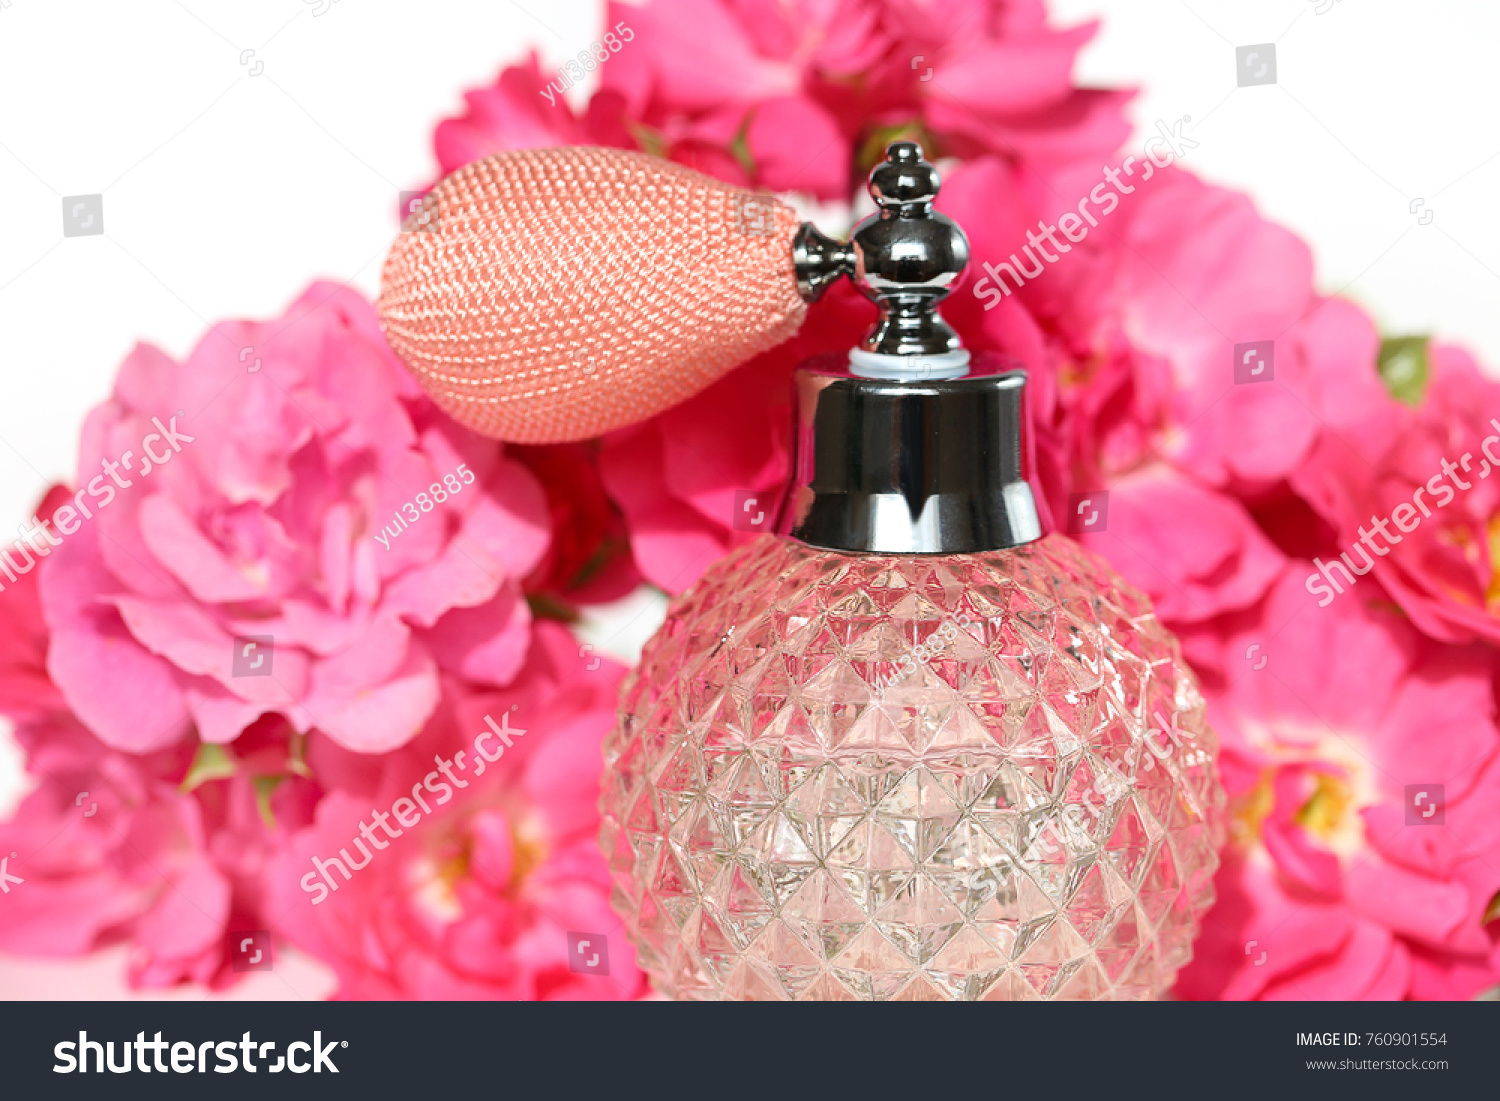 Aroma rose eau de toilette rose stock photo royalty free 760901554 eau de toilette with a rose scent and flowers pink roses izmirmasajfo